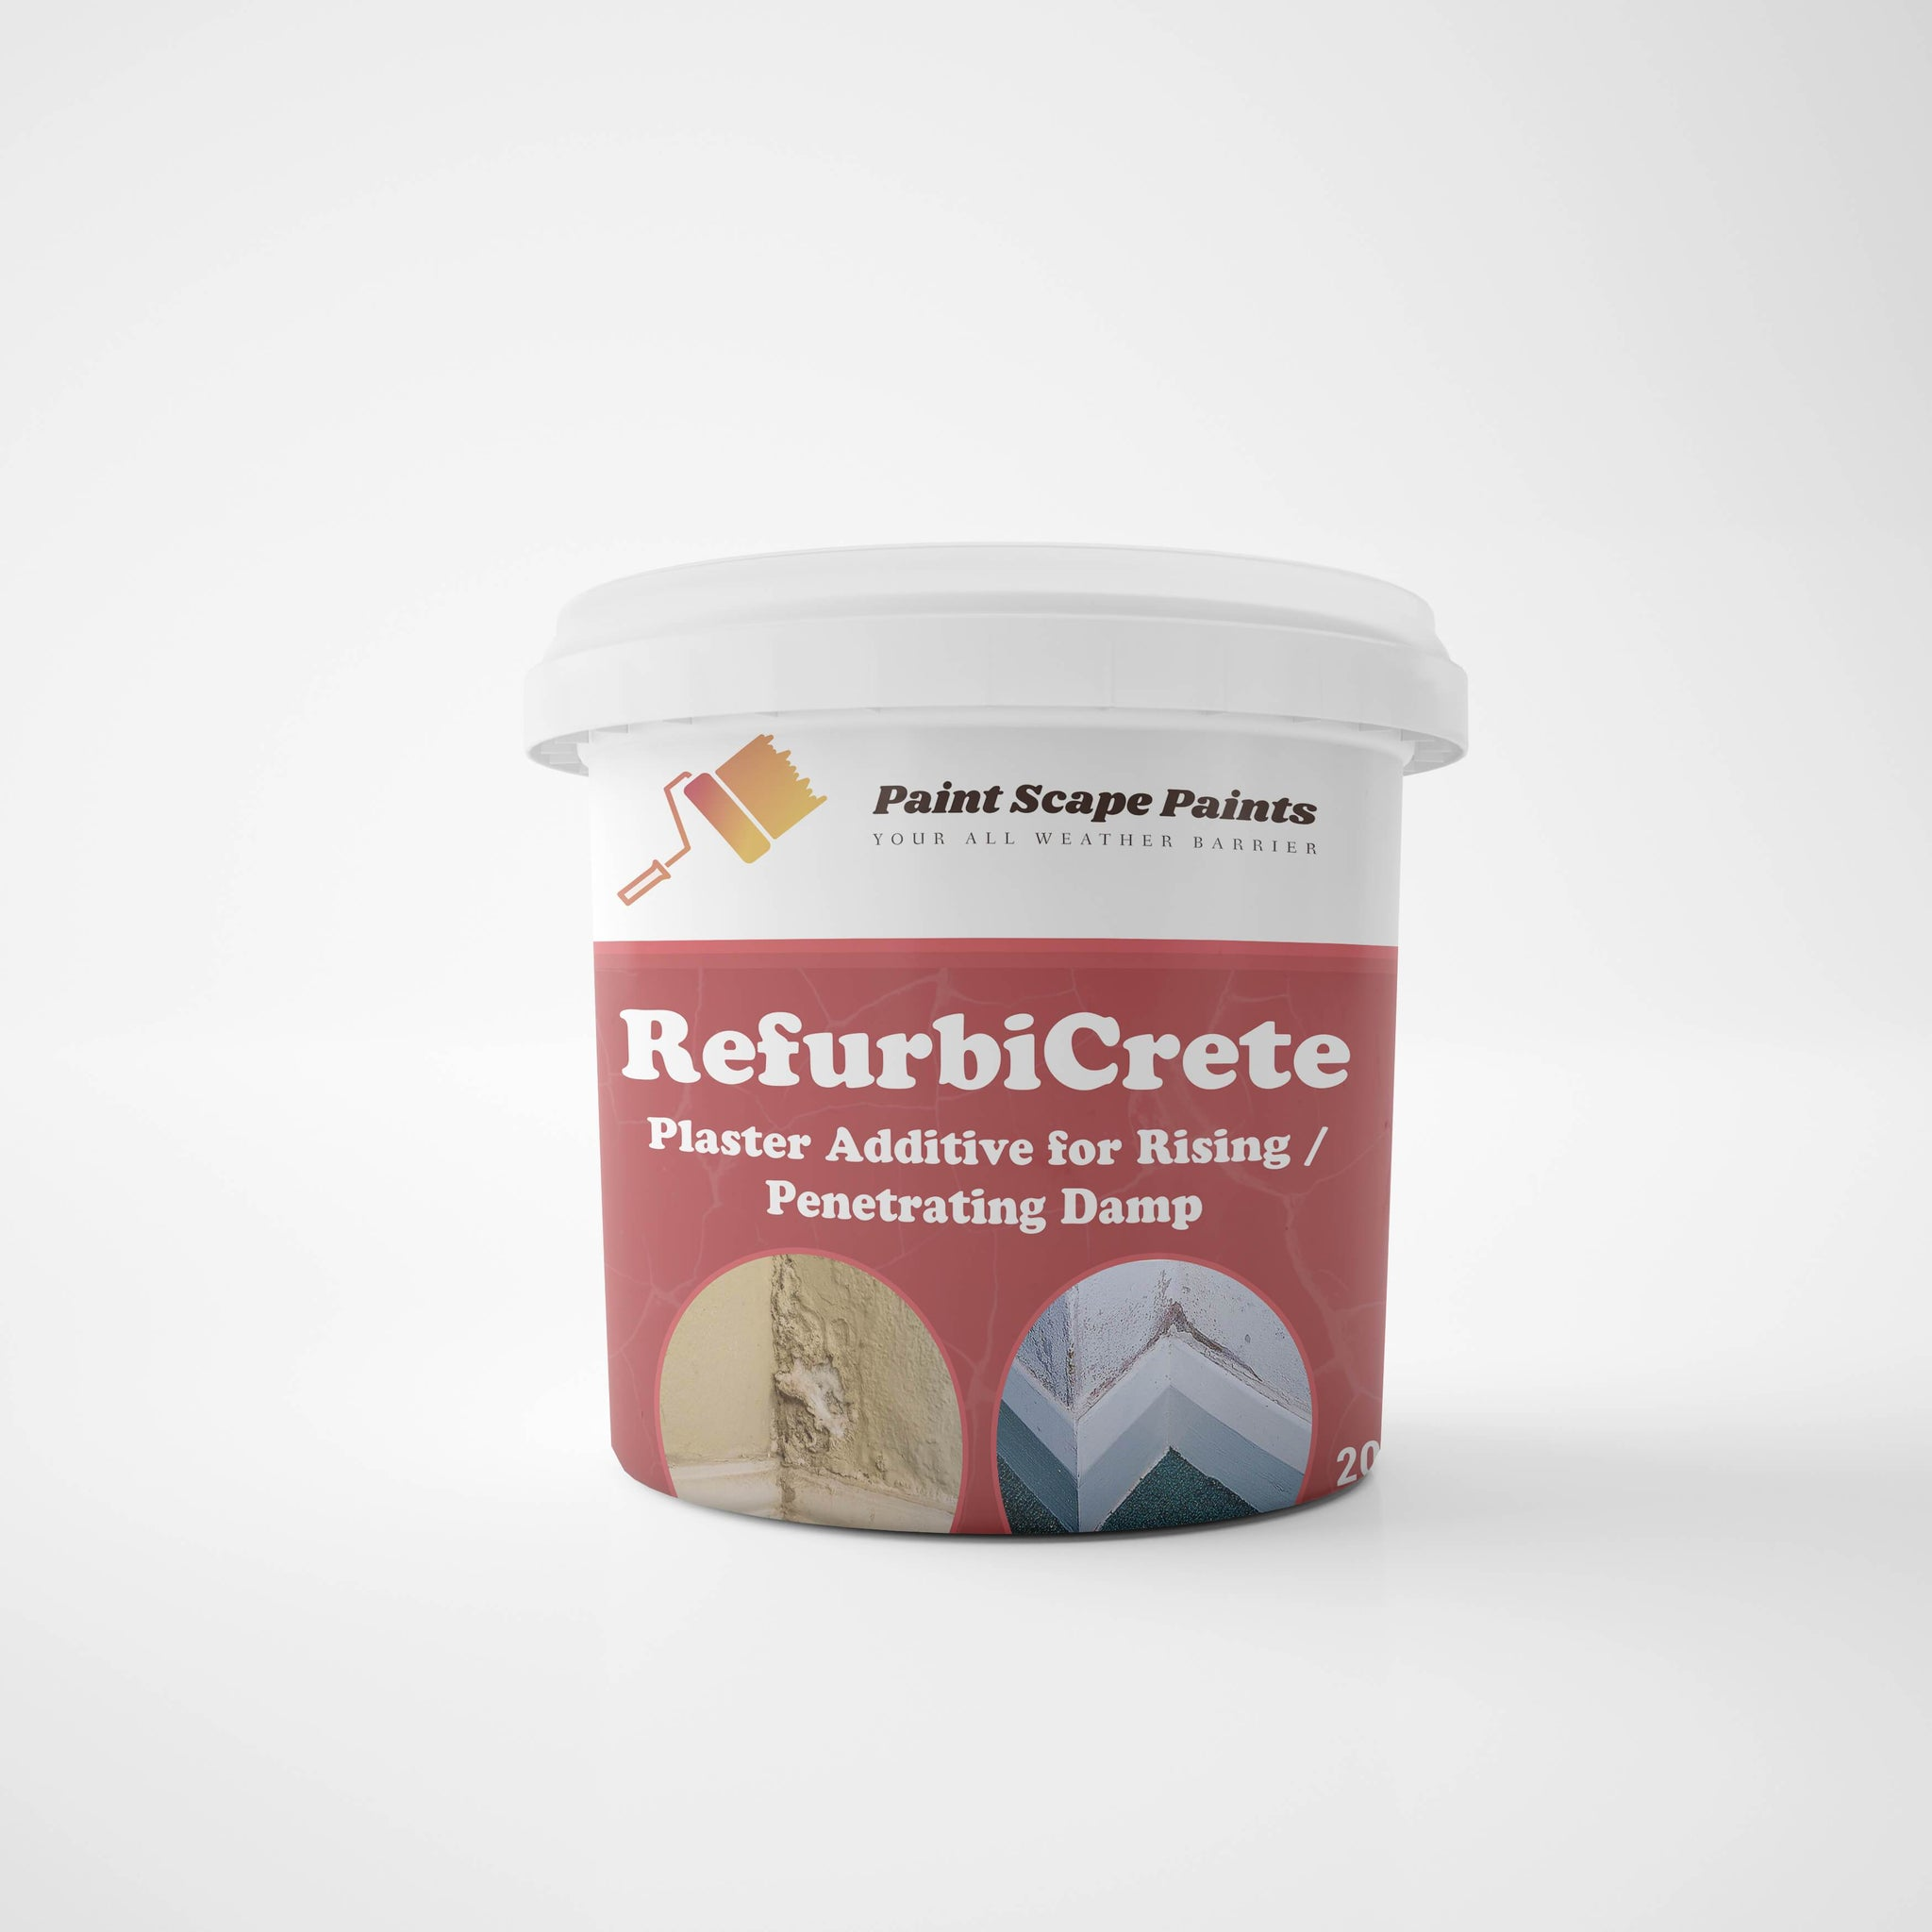 RefurbiCrete Paint Scape Paints